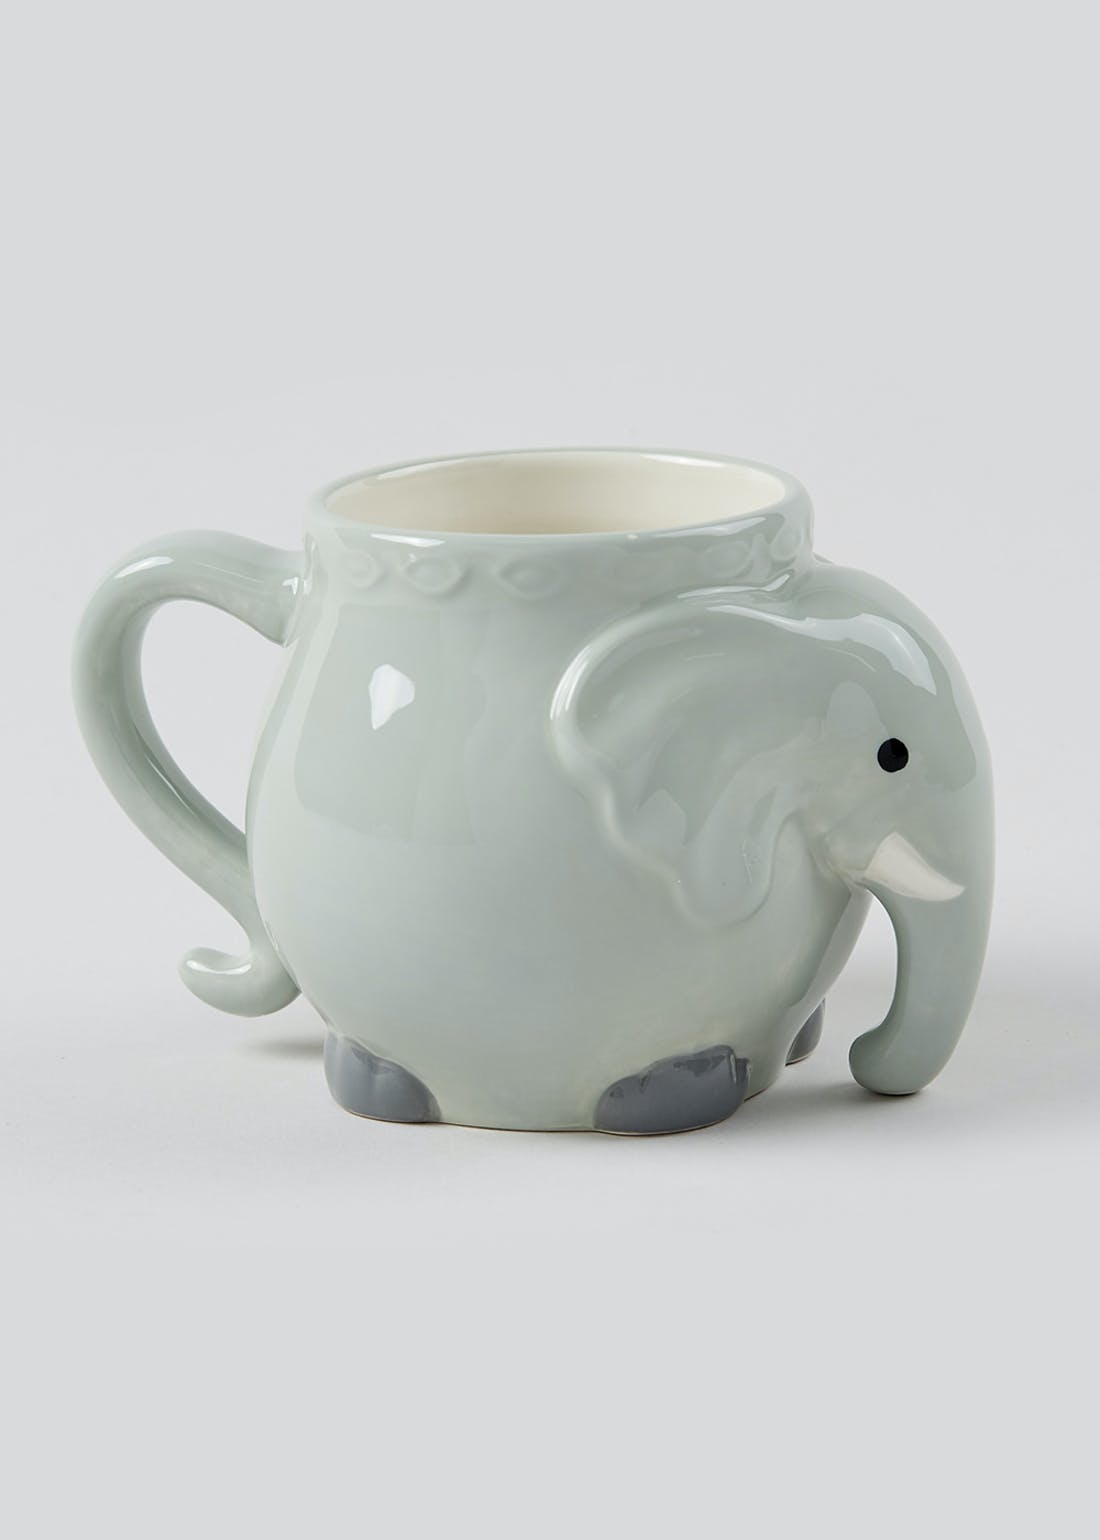 Elephant Shaped Mug (12cm x 8cm)